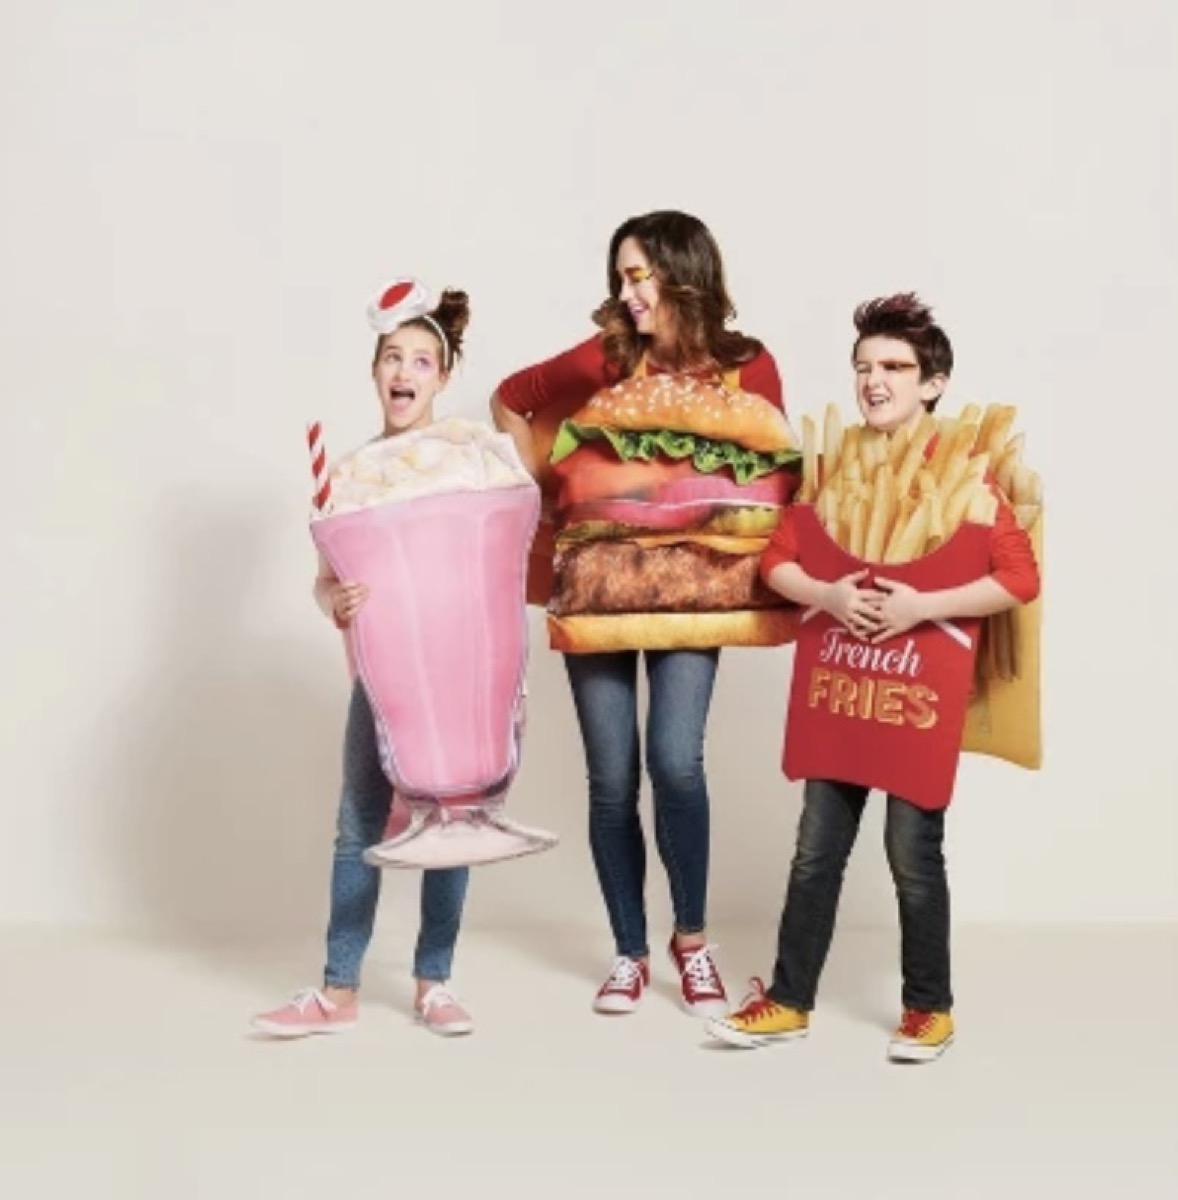 woman dressed as a hamburger, girl dressed as pink milkshake, and boy dressed as french fries, family halloween costumes